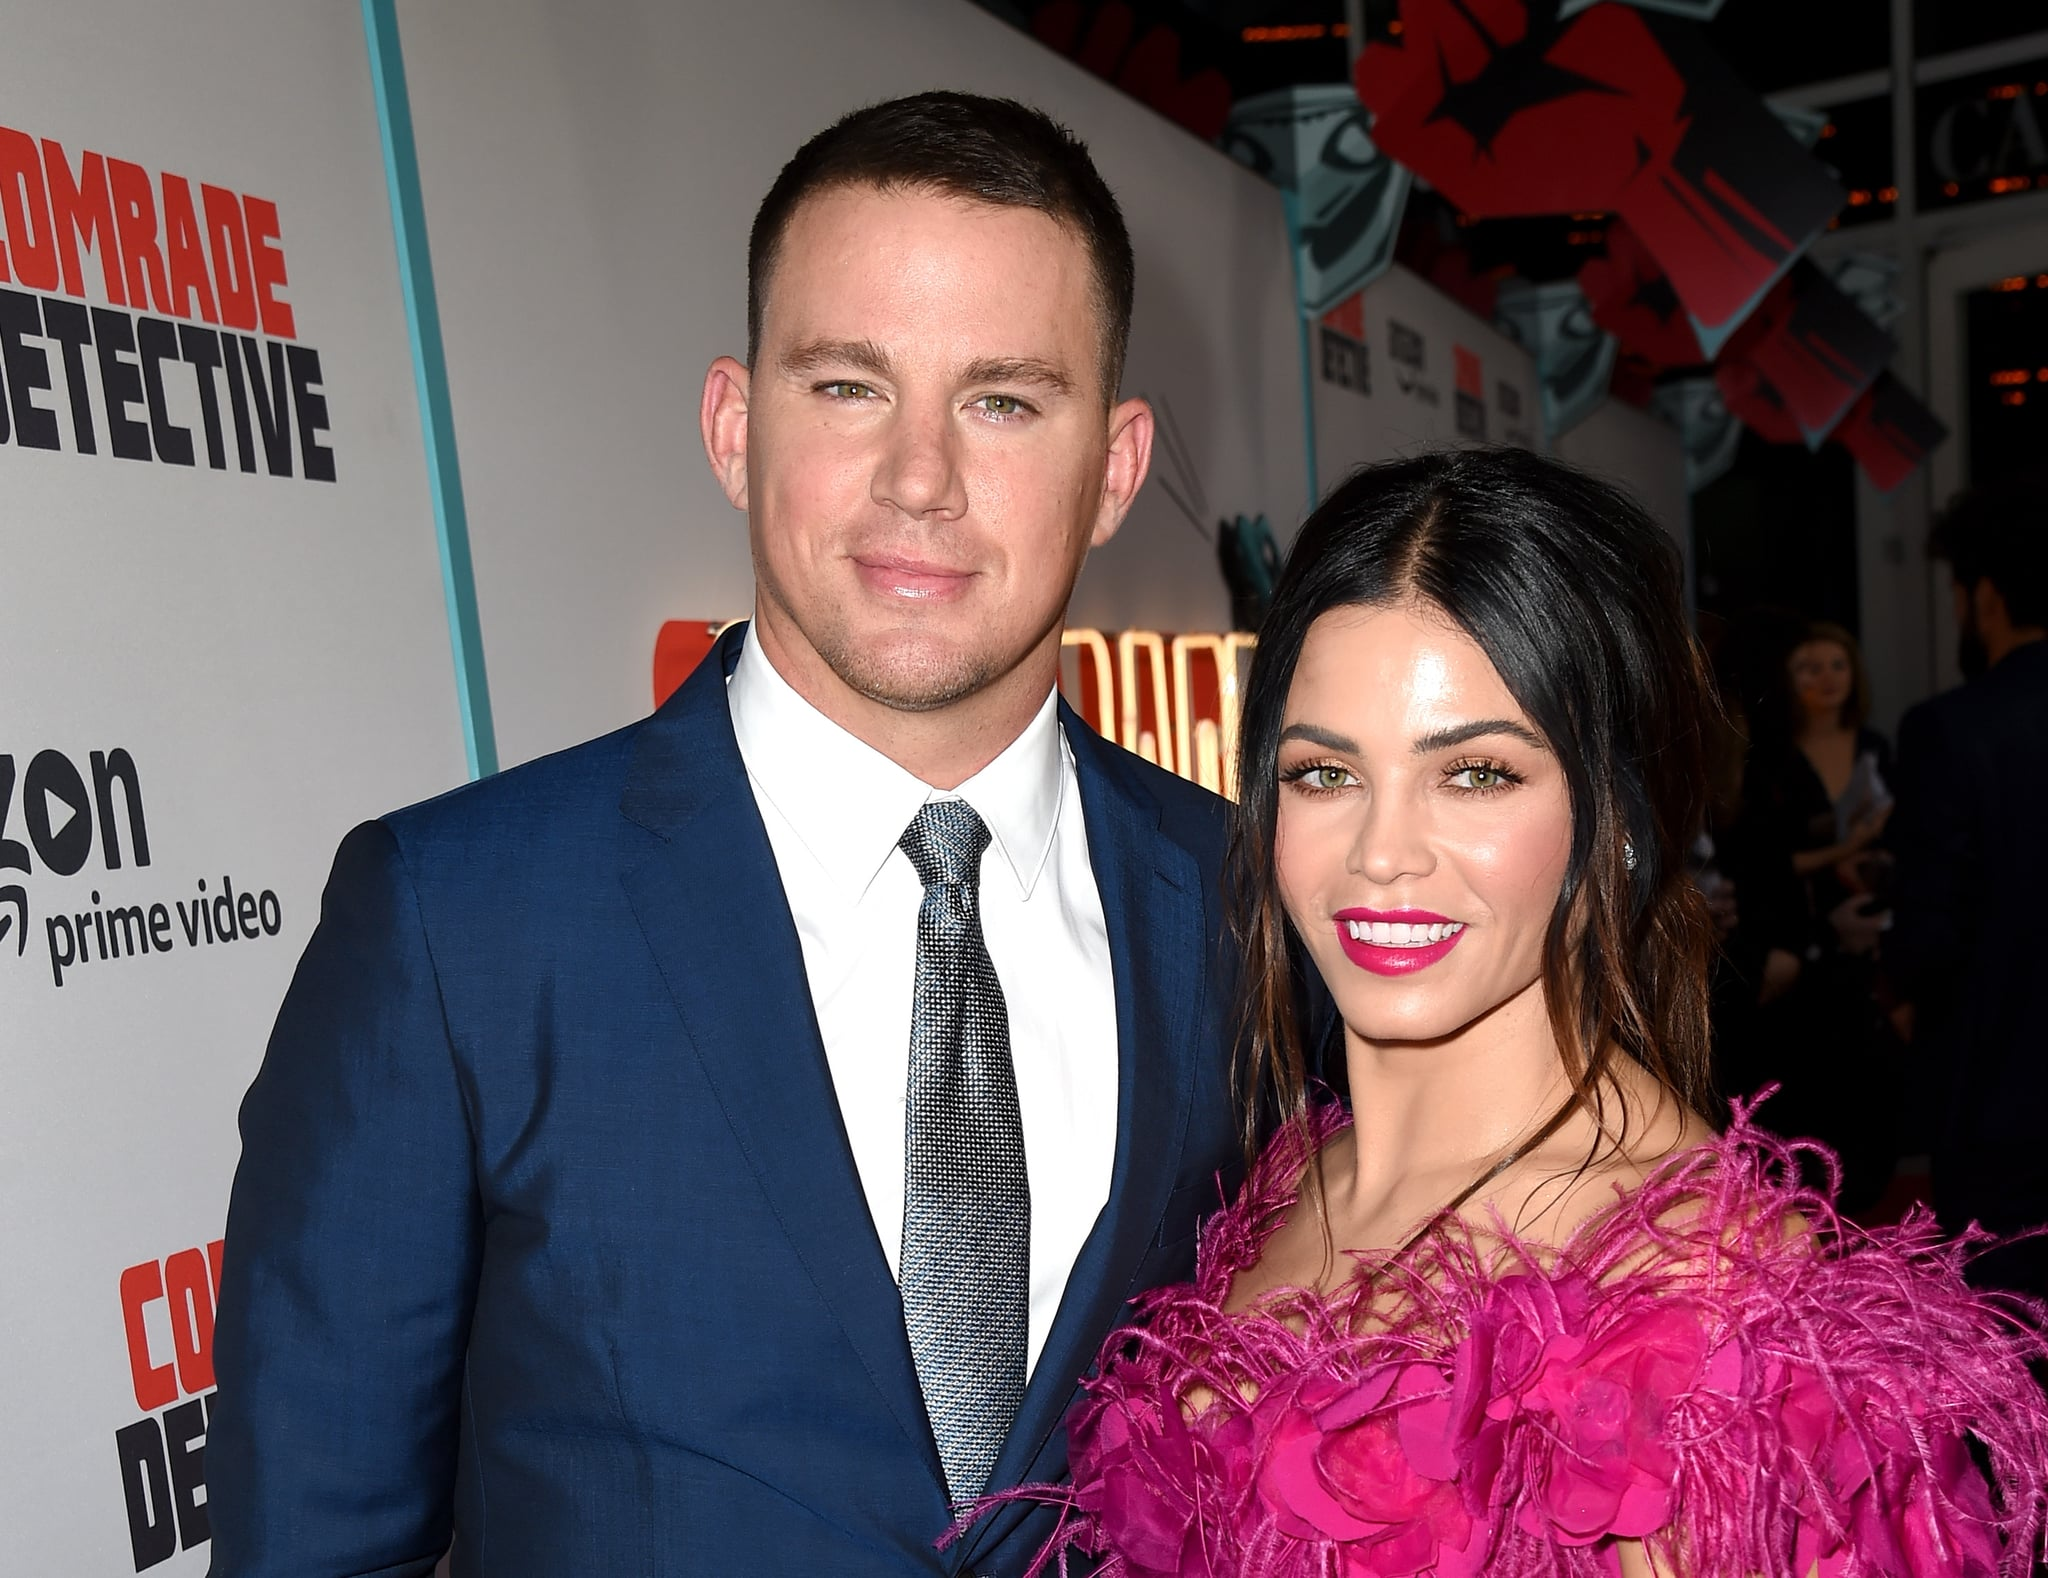 LOS ANGELES, CA - AUGUST 03:  Actor Channing Tatum (L) and his wife Jenna Dewan Tatum arrive at the premiere of Amazon's